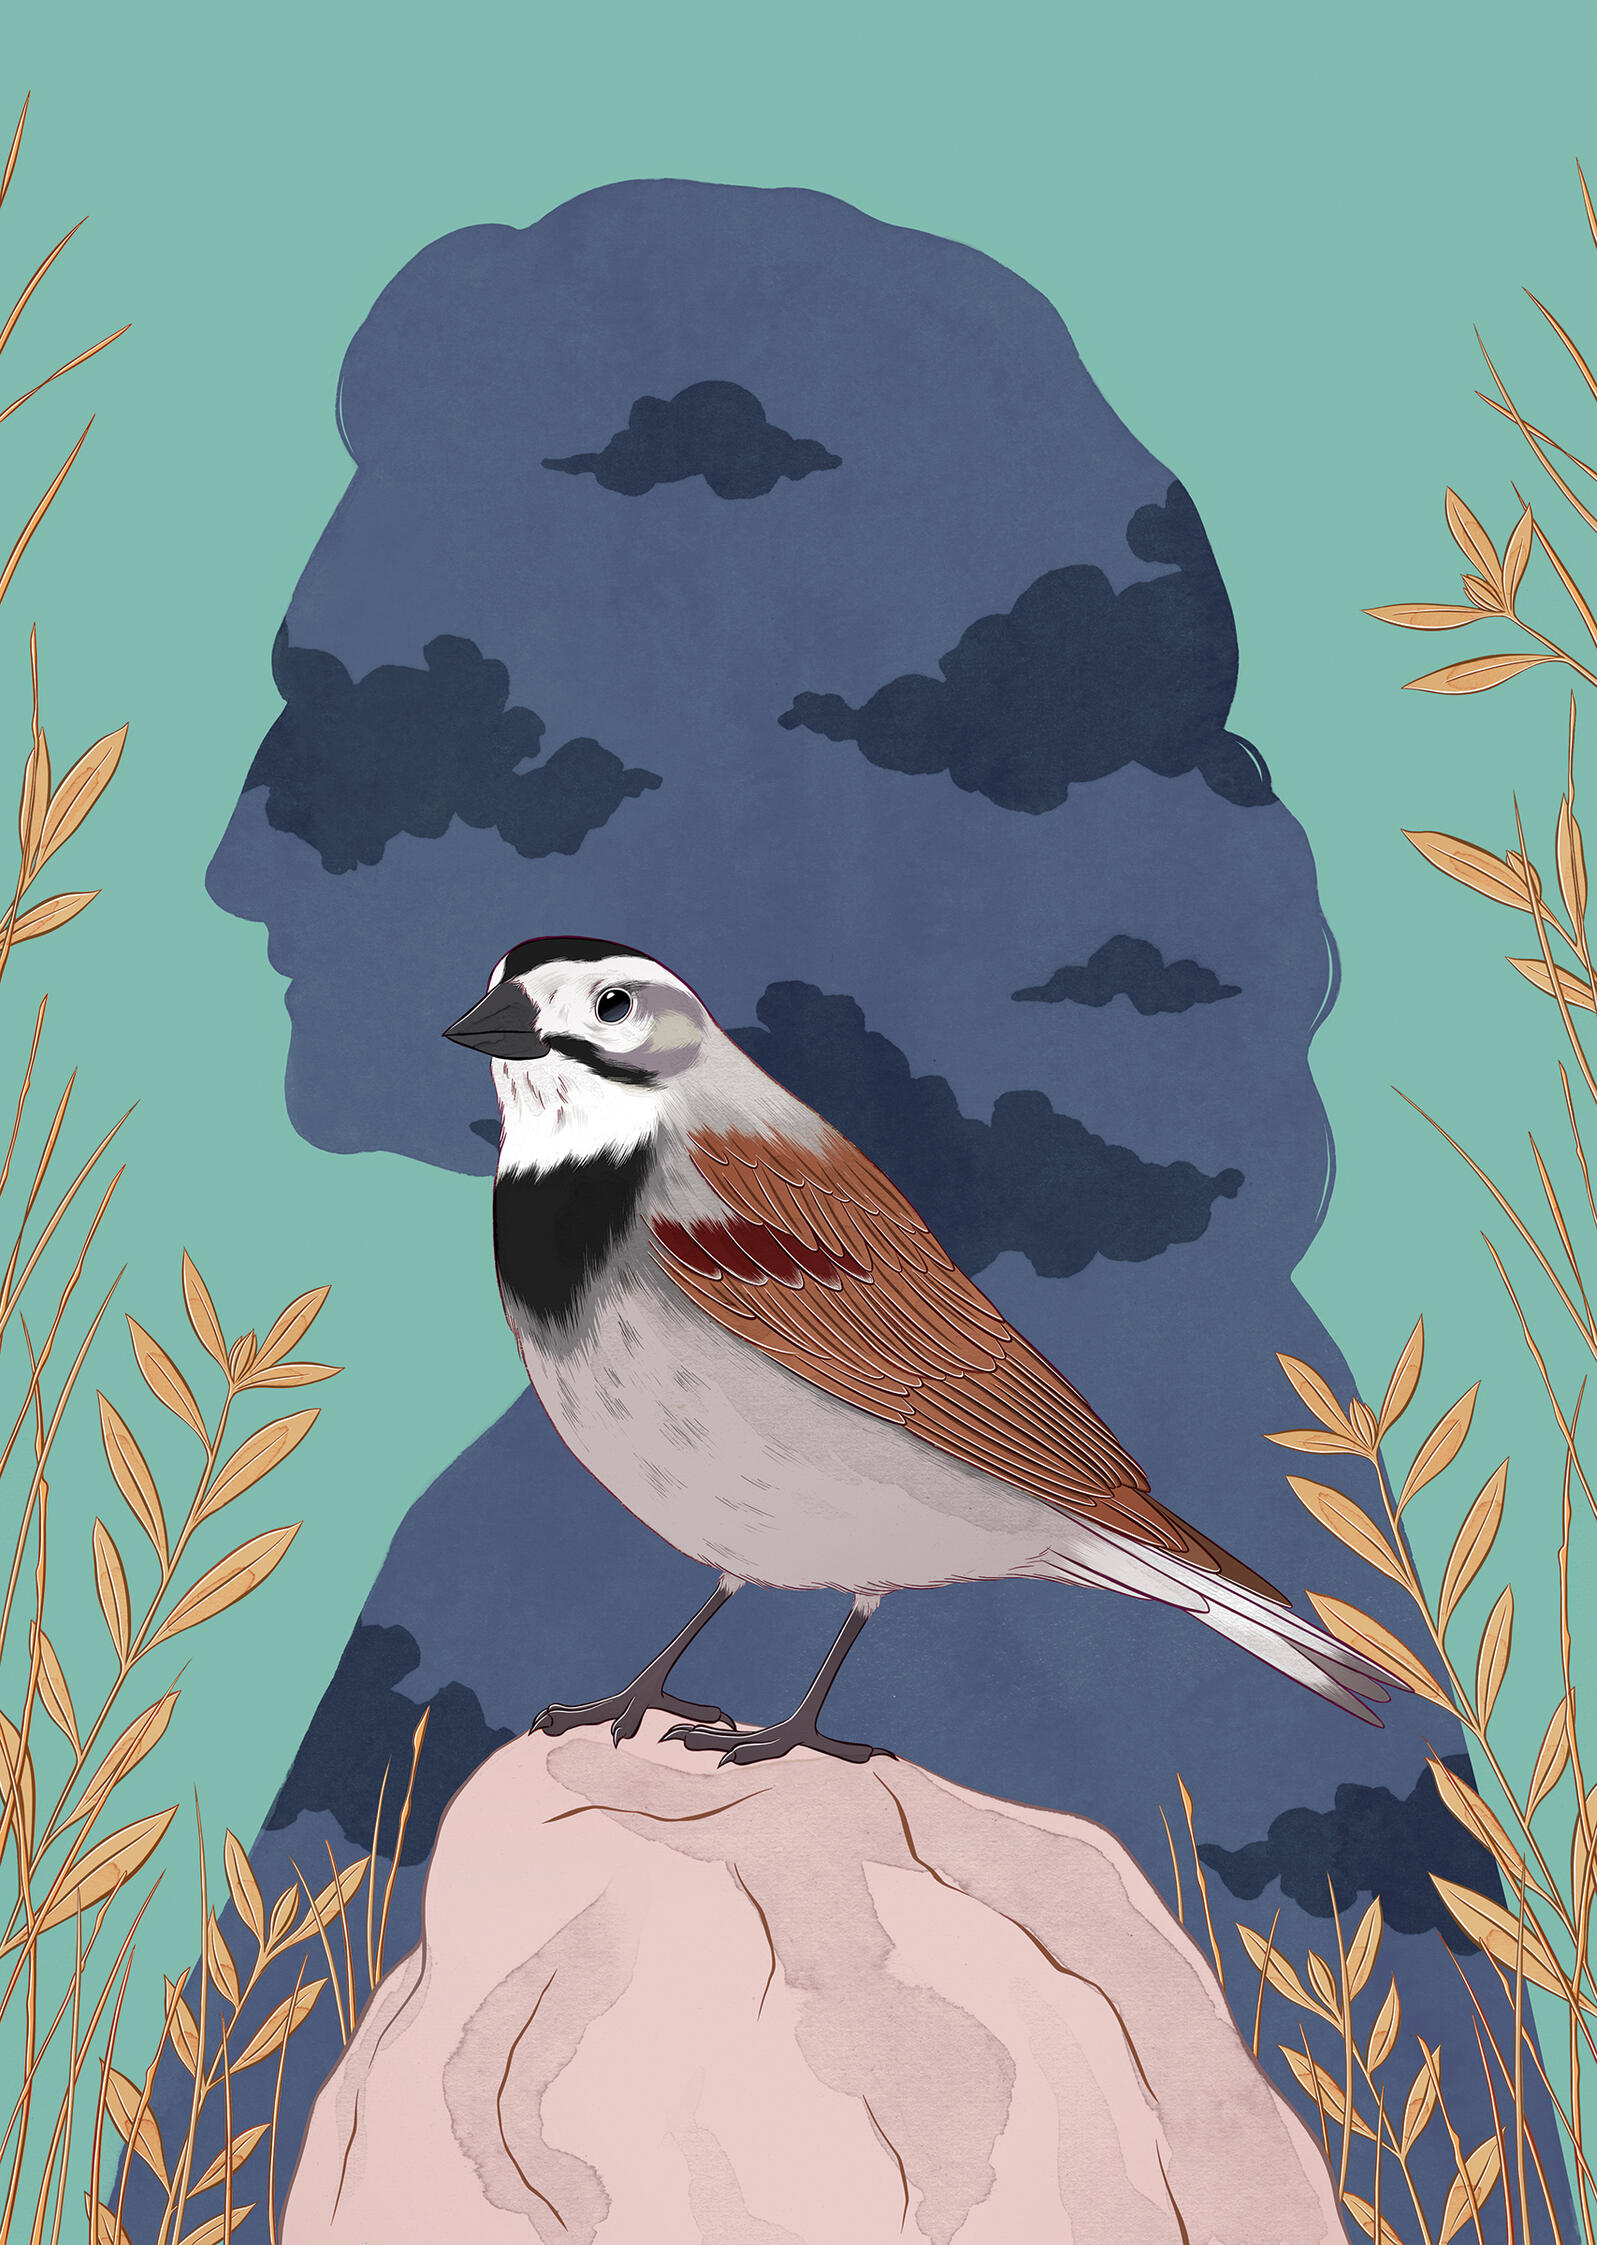 The bird formerly called the McCown's Longspur is now the Thick-billed Longspur. The racist actions of figures like John James Audubon cast a long shadow over today's birding and conservation communities. Illustration: Stephanie Singleton